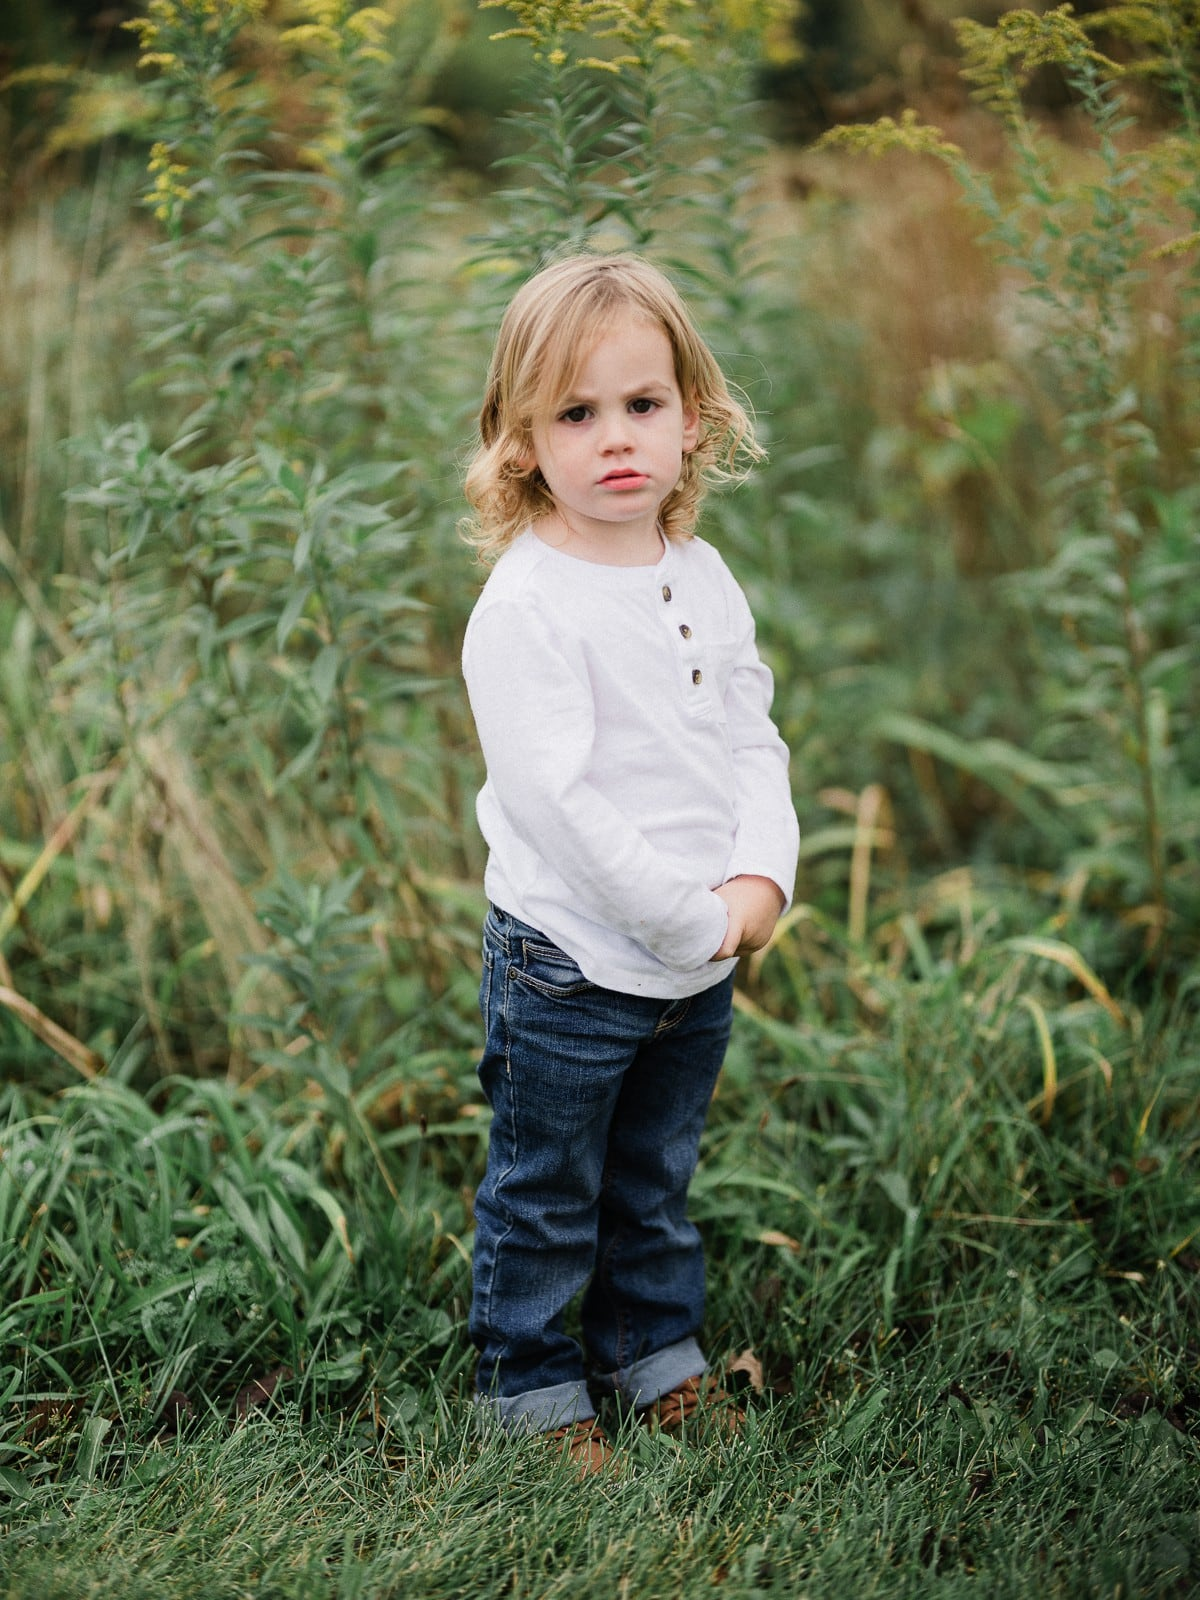 Childrens photography sample gallery child portraits